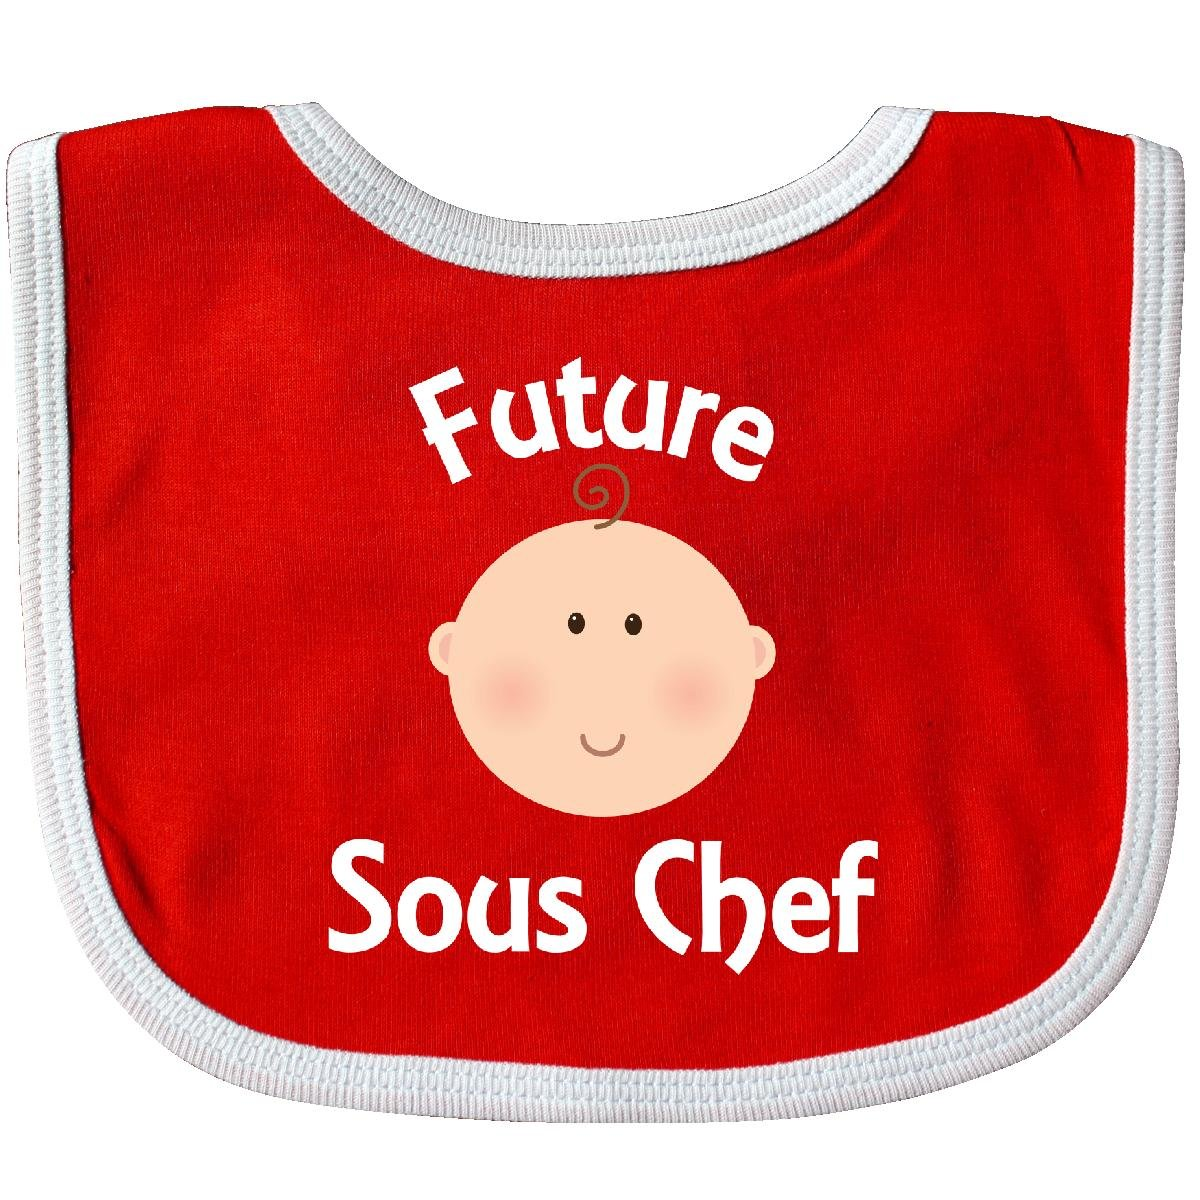 Inktastic - Future Sous Chef Occupation Gift Baby Bib 26f51 14-159569-116-893-2993